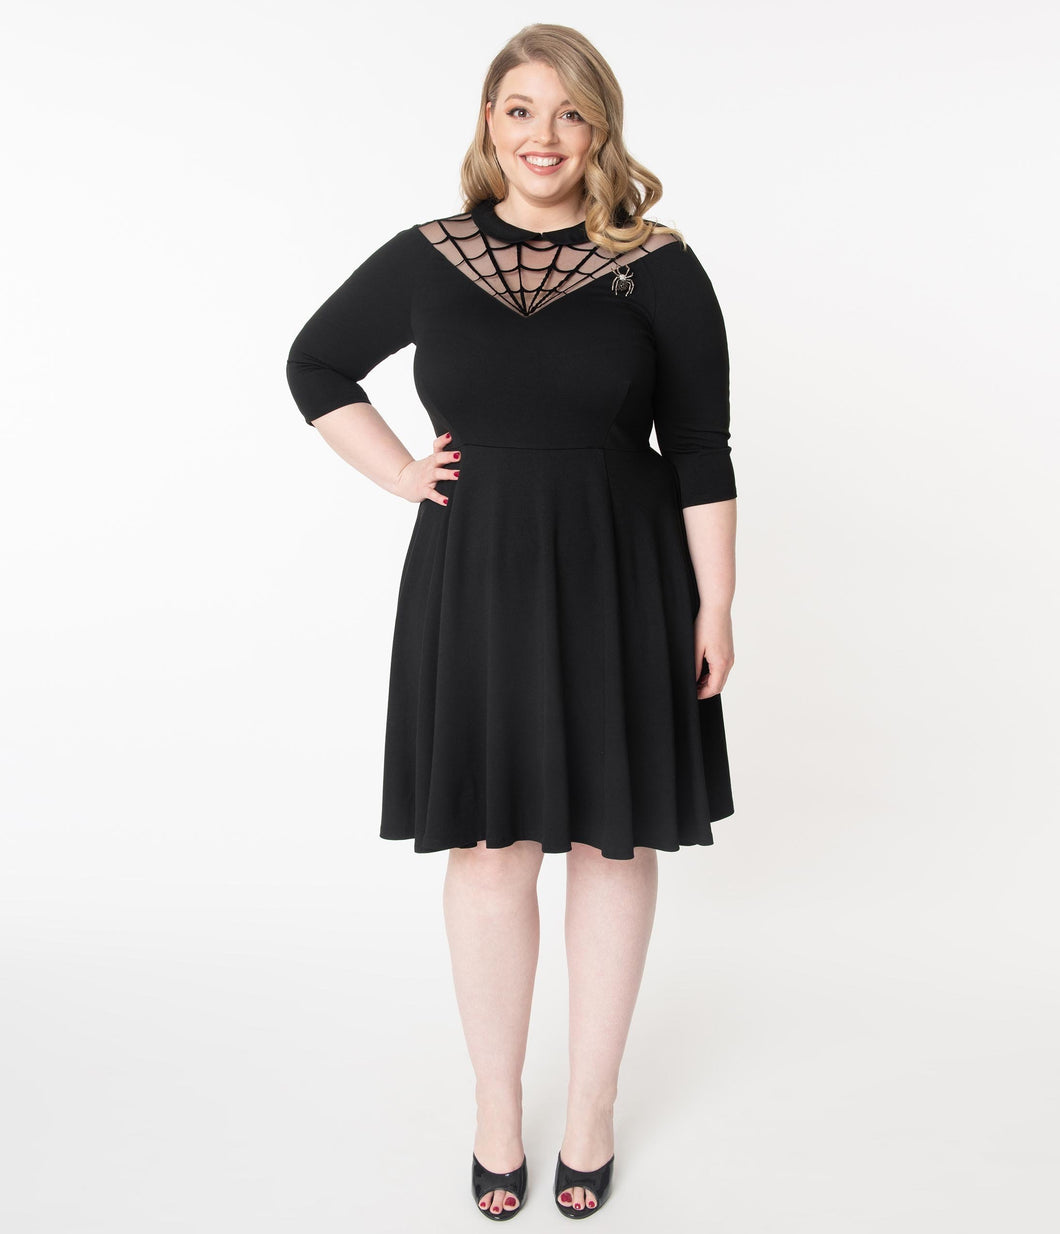 Unique Vintage Black Spiderweb Endora Fit & Flare Dress